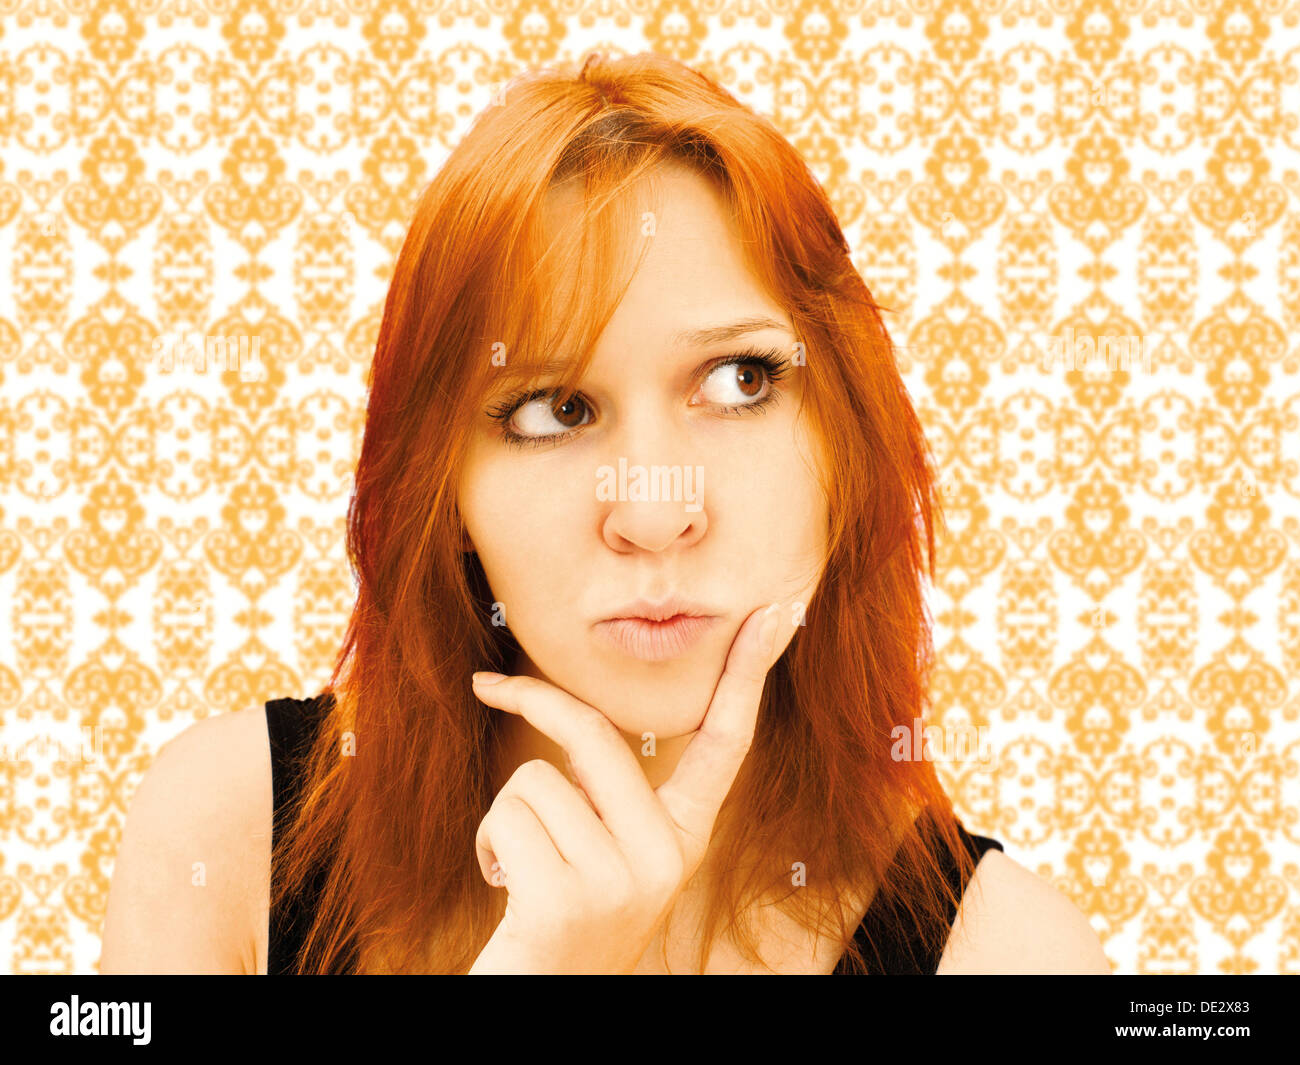 Portrait of a skeptical young woman in front of baroque wallpaper - Stock Image